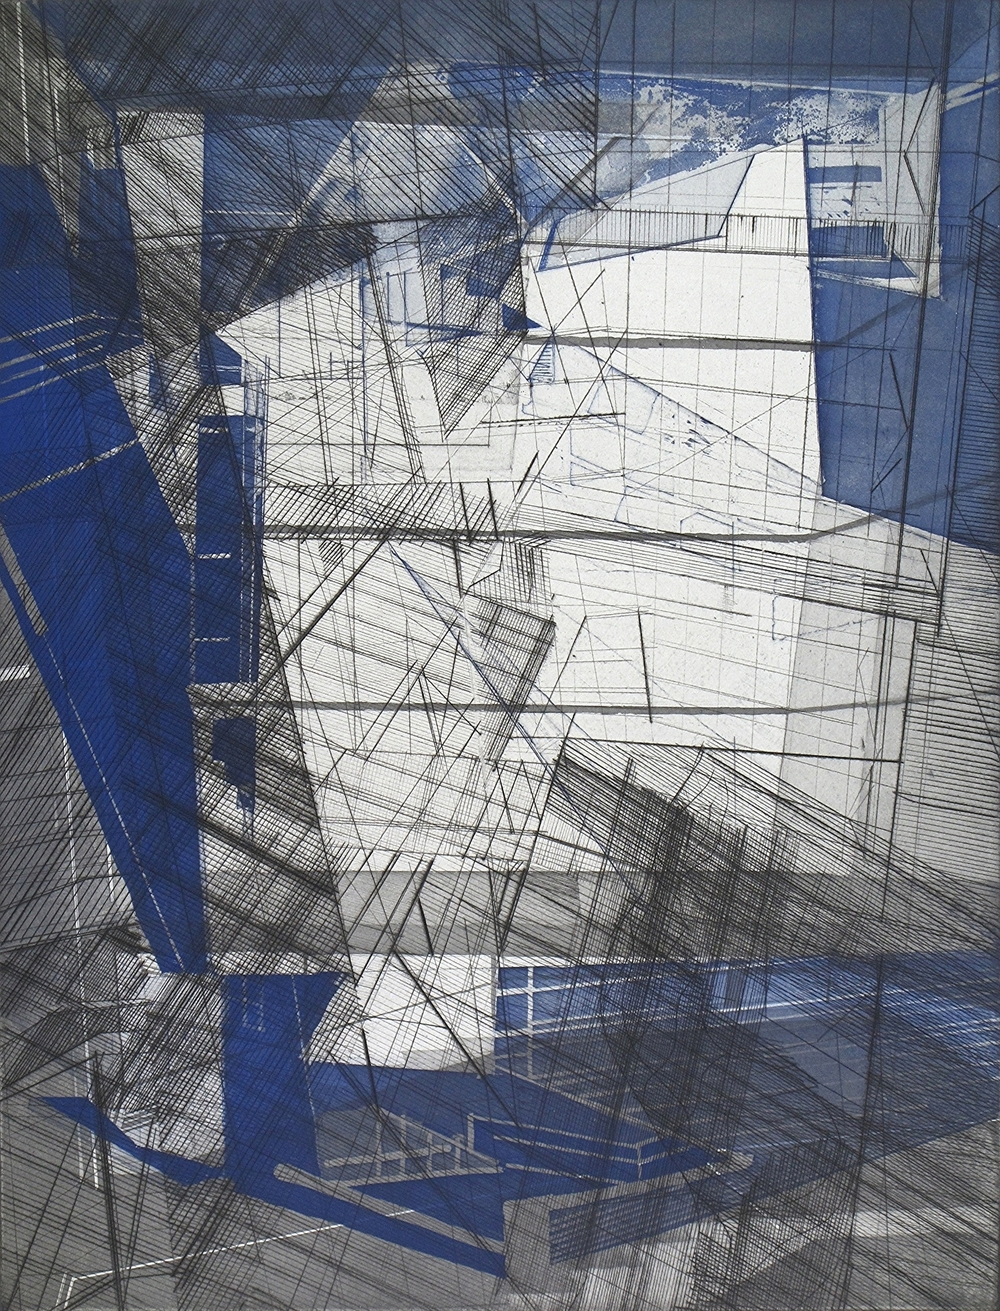 """Folding 2   engraving and etching  on Revere paper  image size: 24x18""""  2014"""